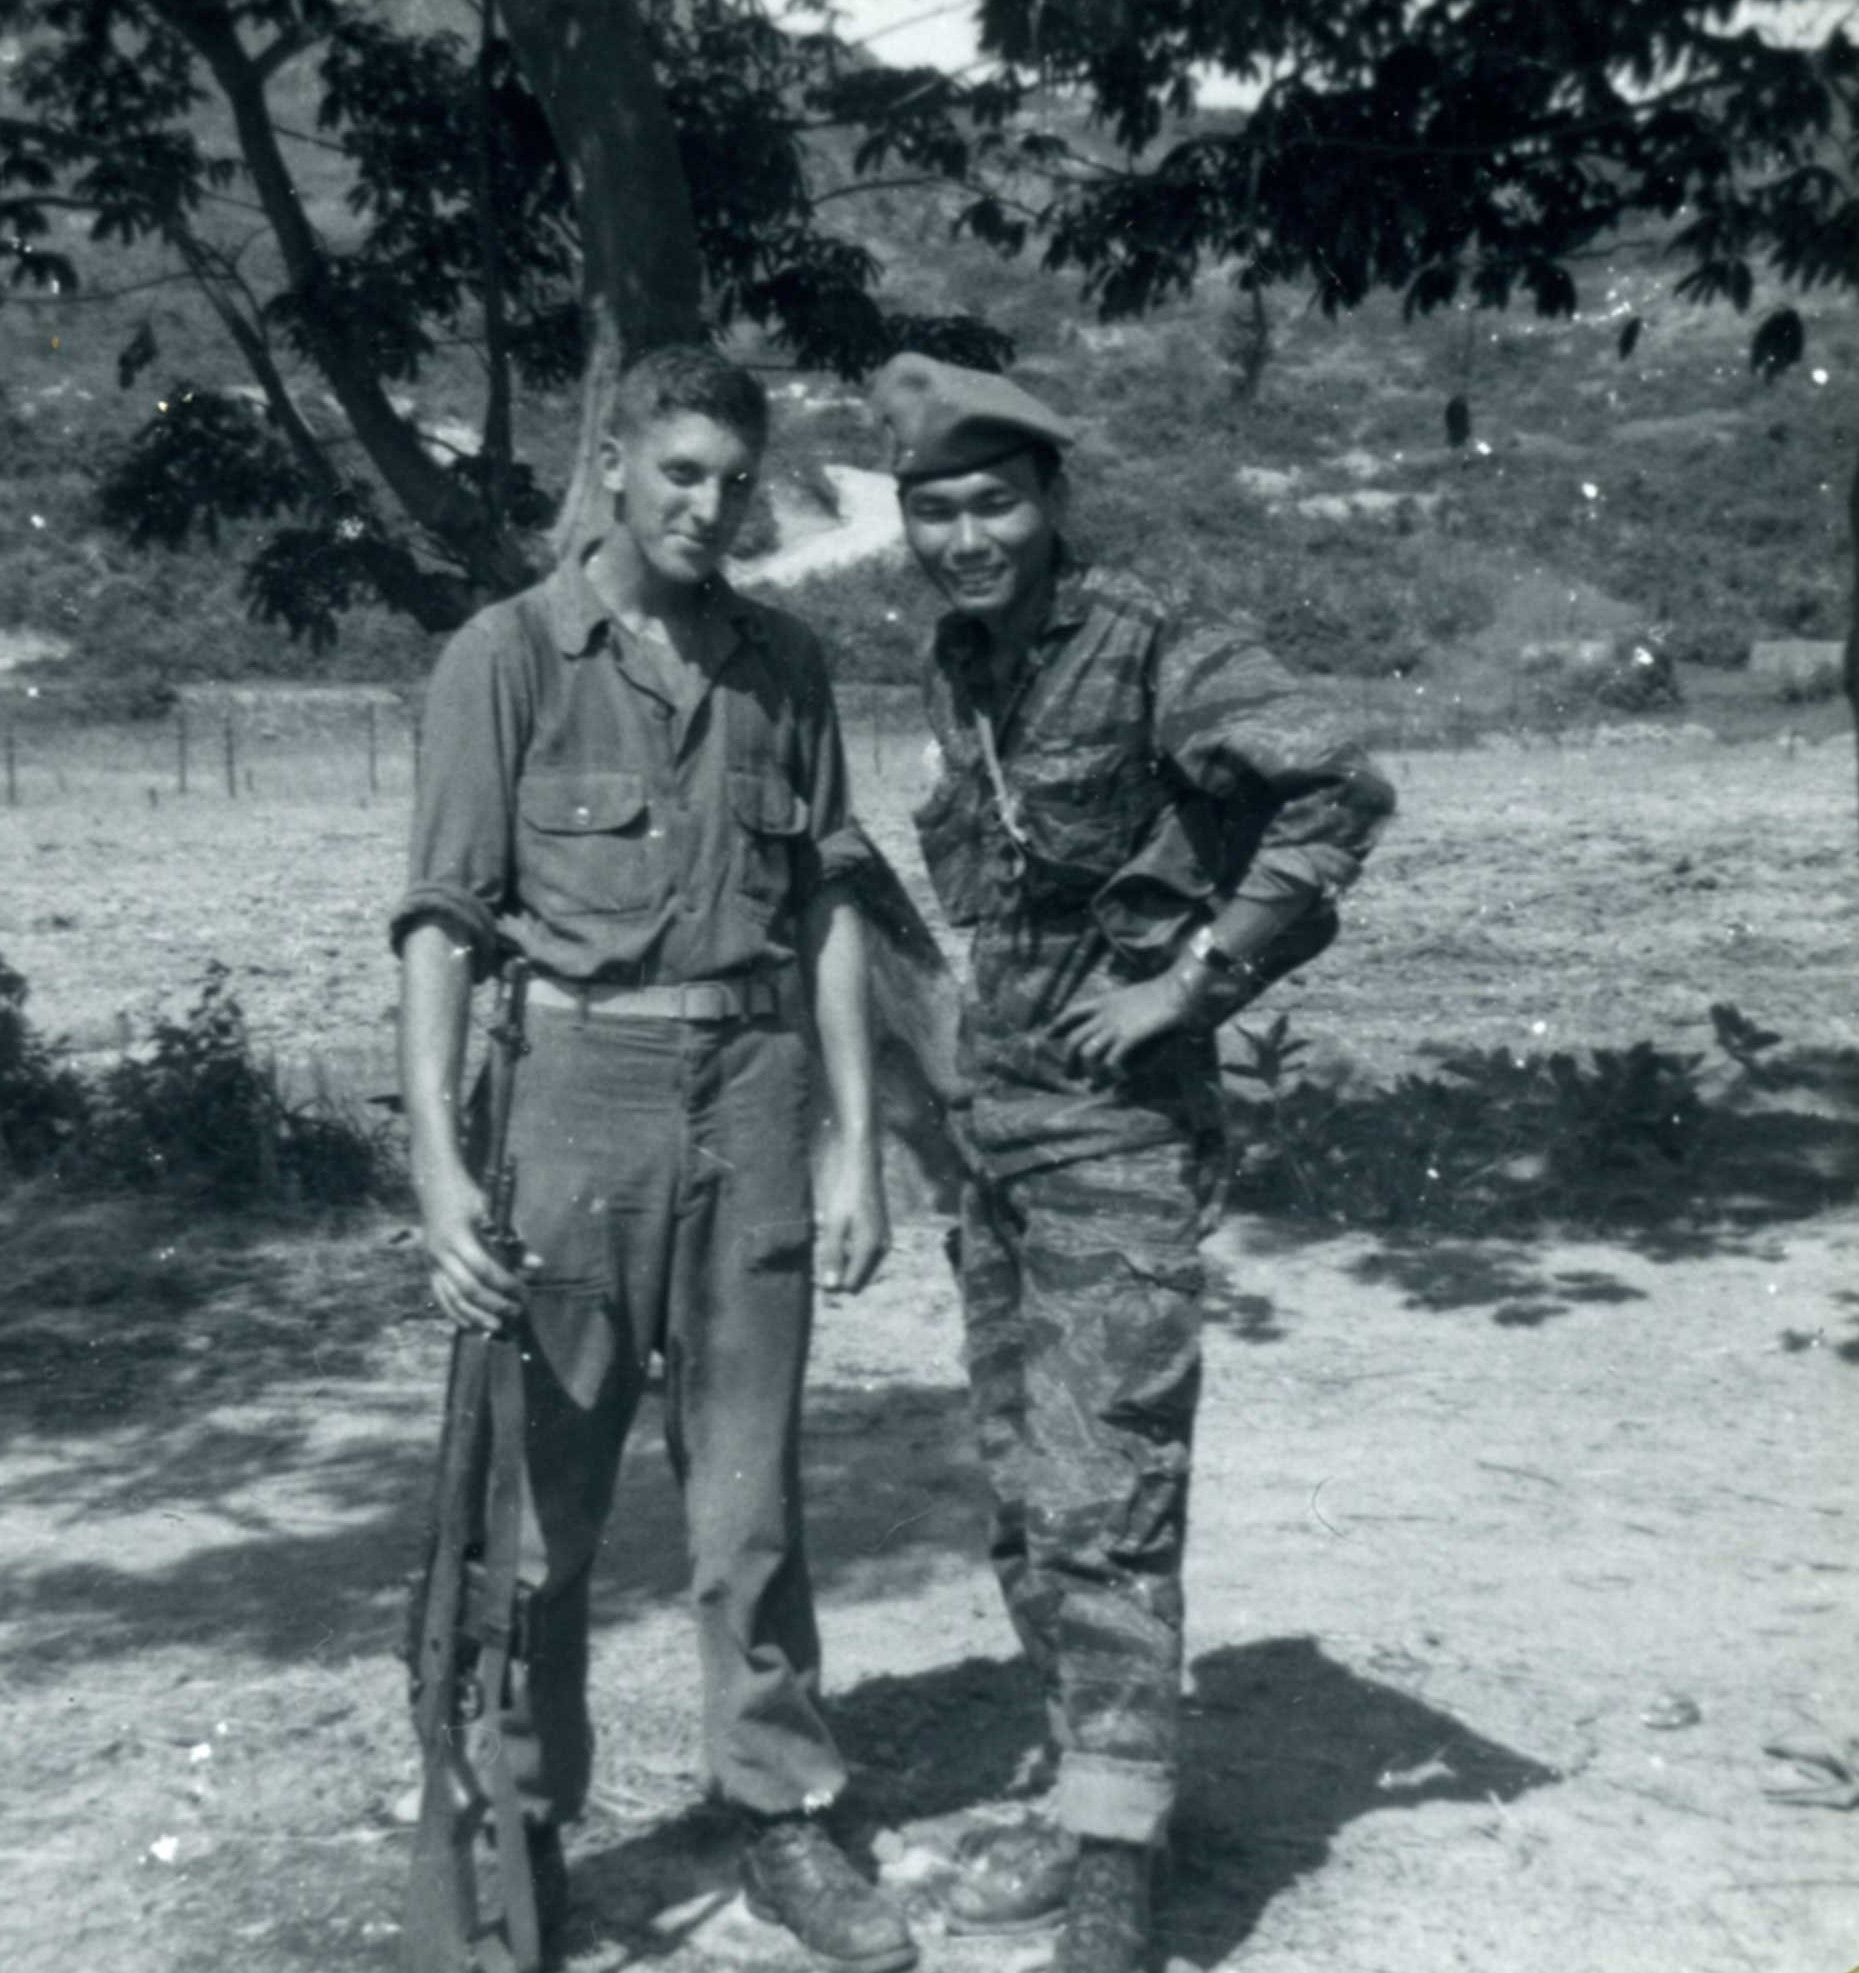 black and white photo of two men standing in front of a tree